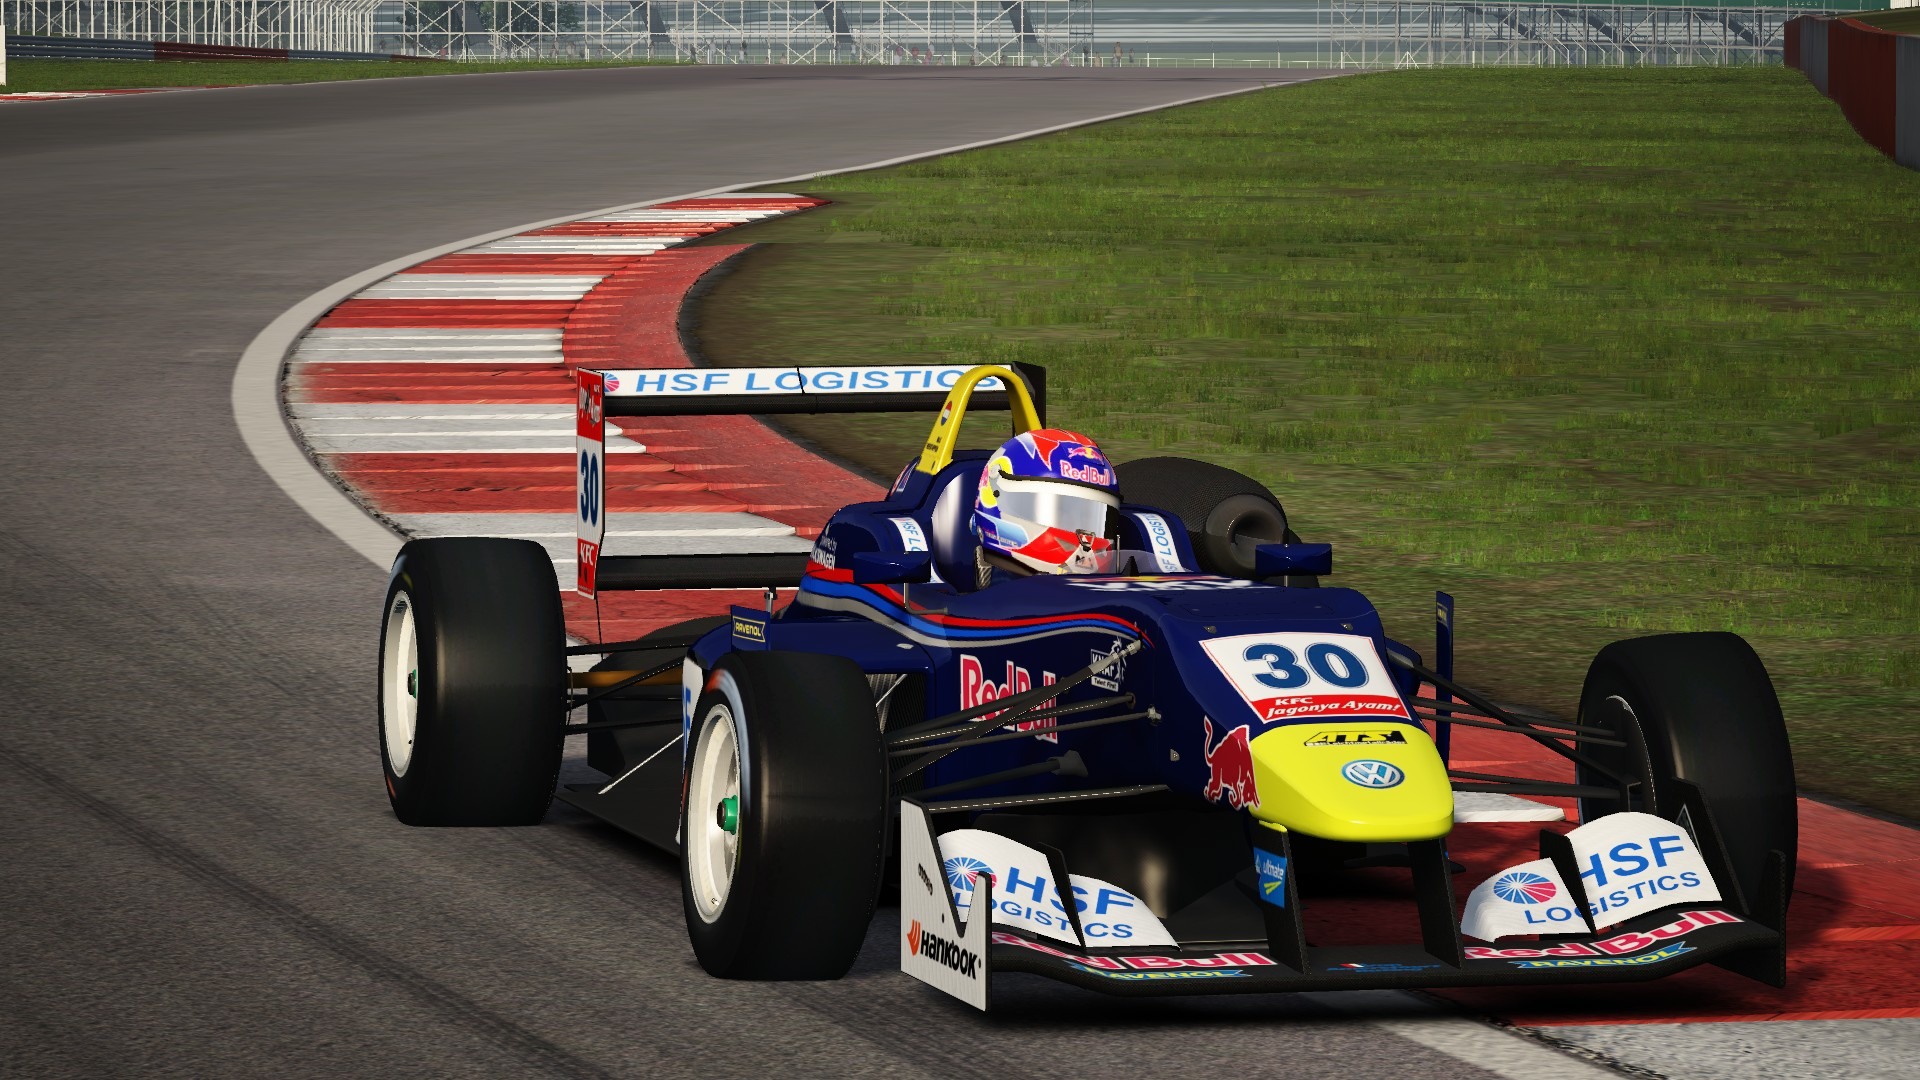 Screenshot_dallara_f312_silverstone_9-12-115-11-46-21.jpg